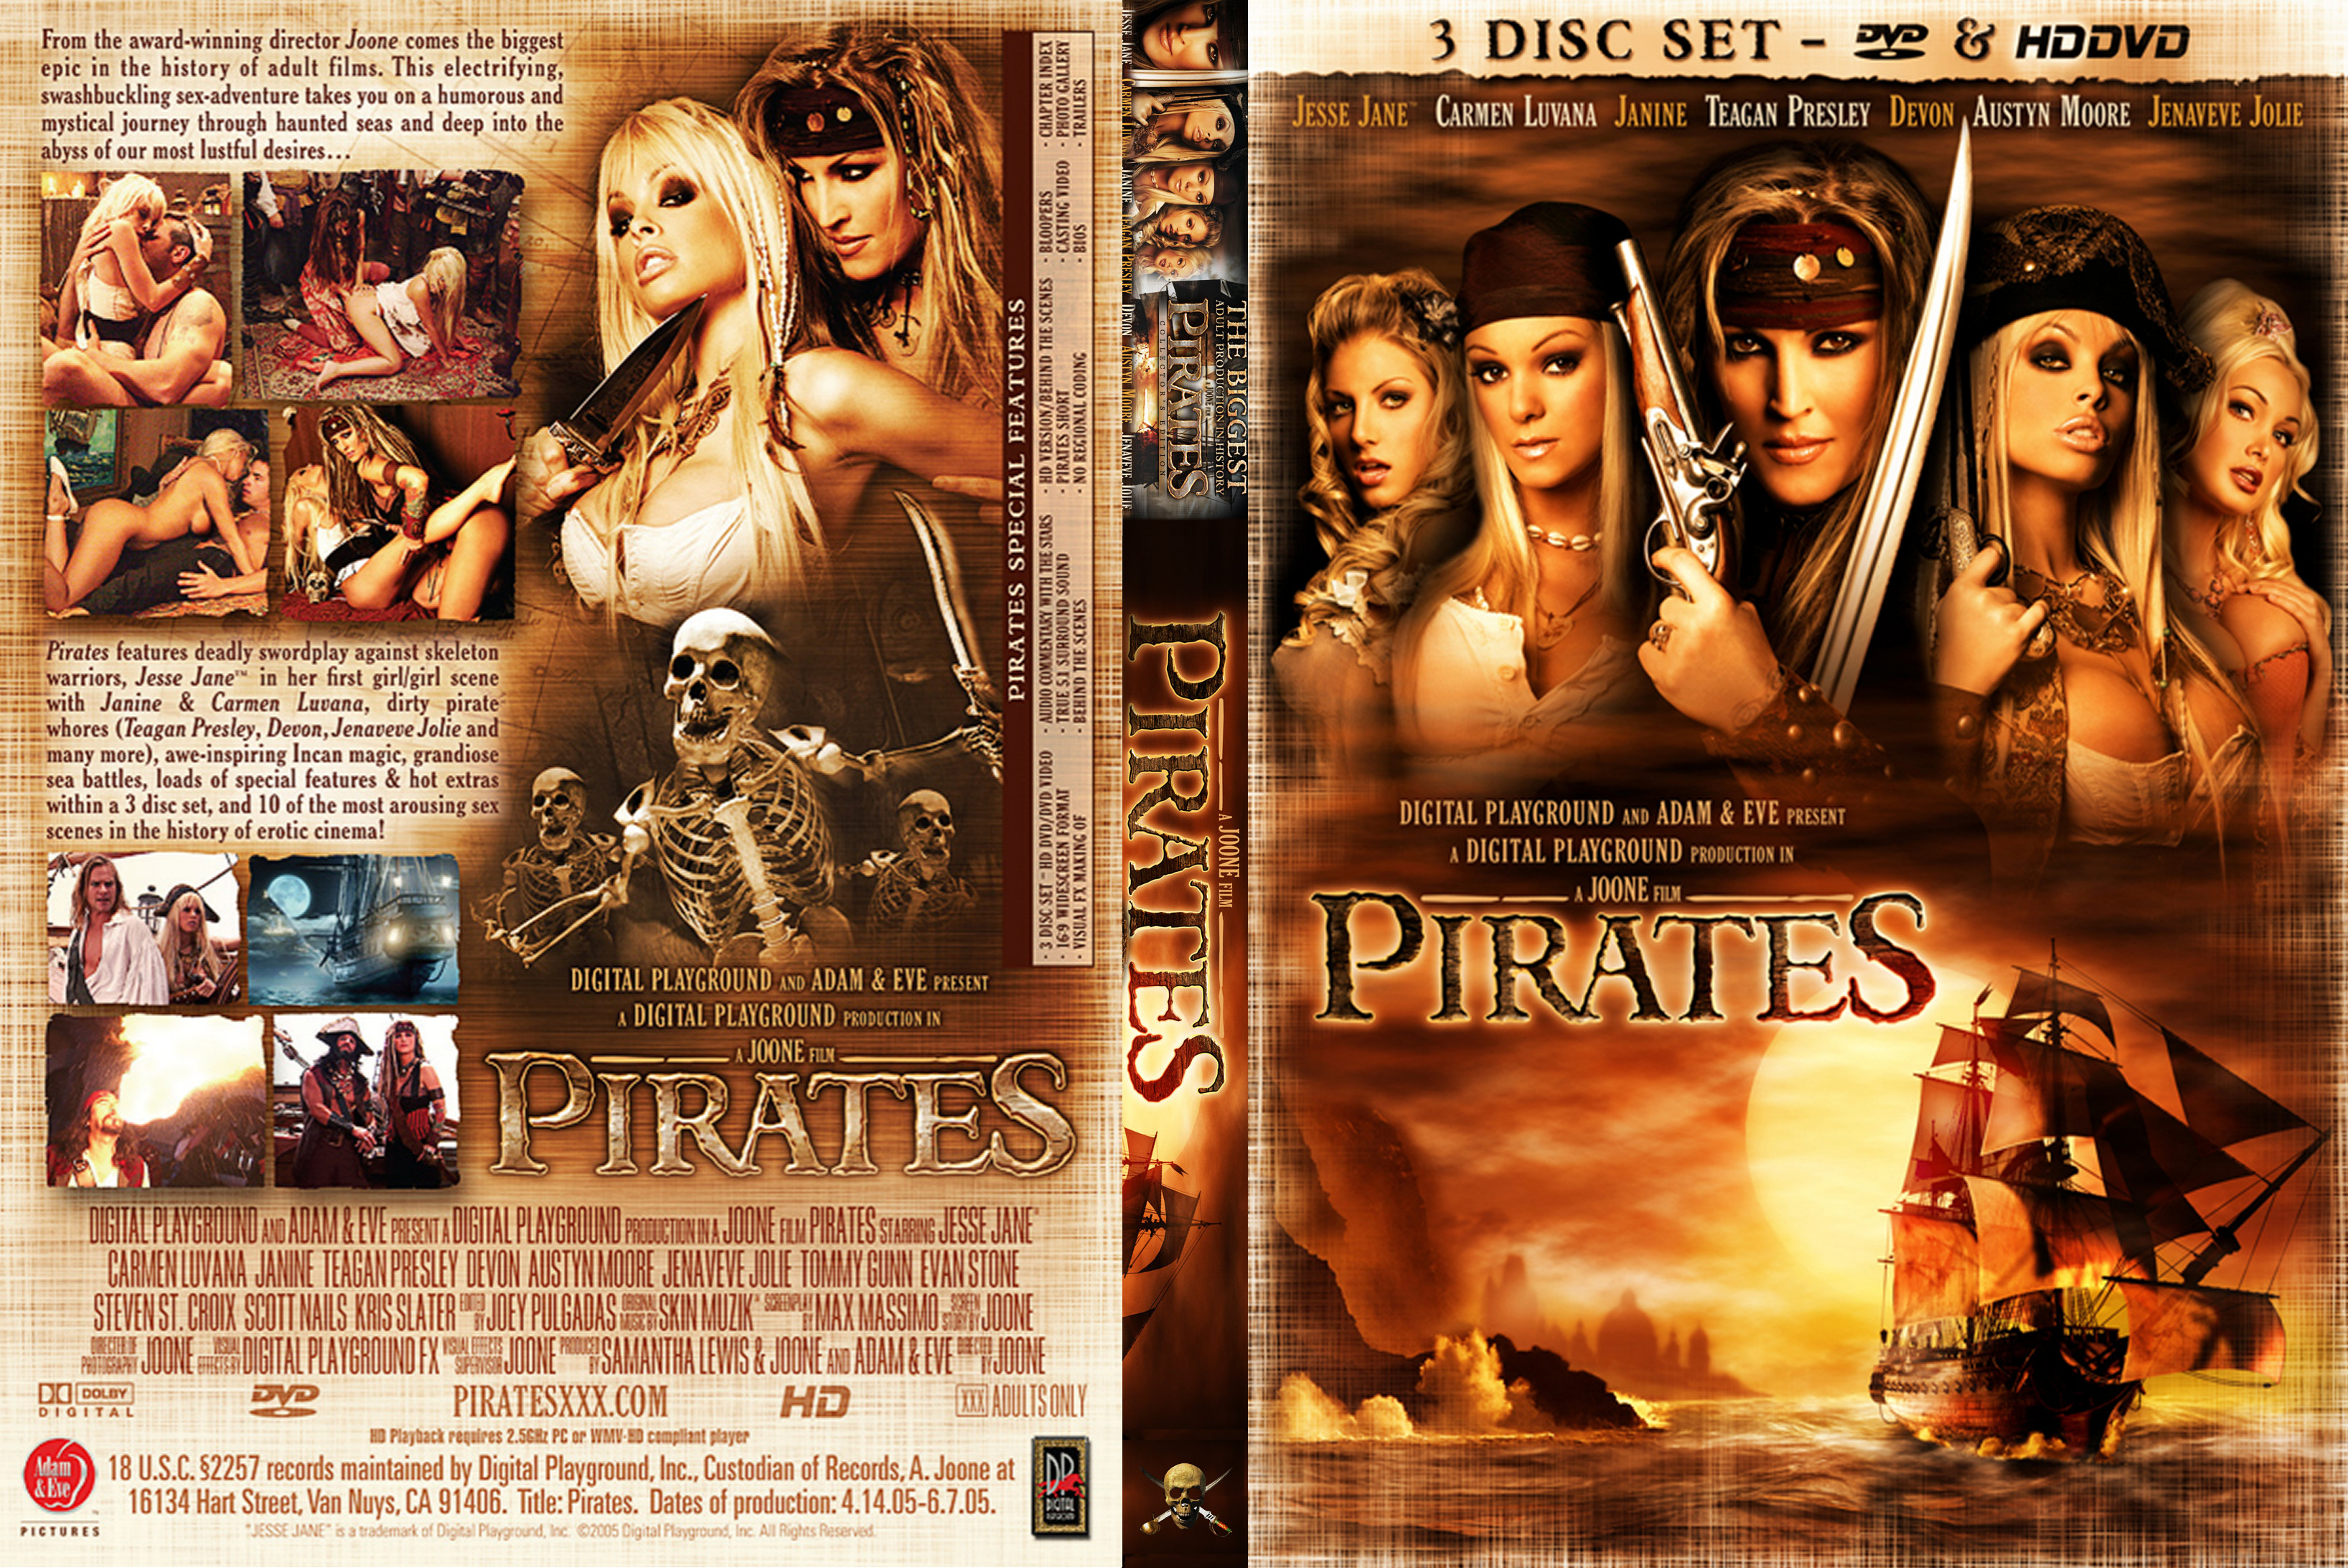 Pirates 2 adult movie nude comic